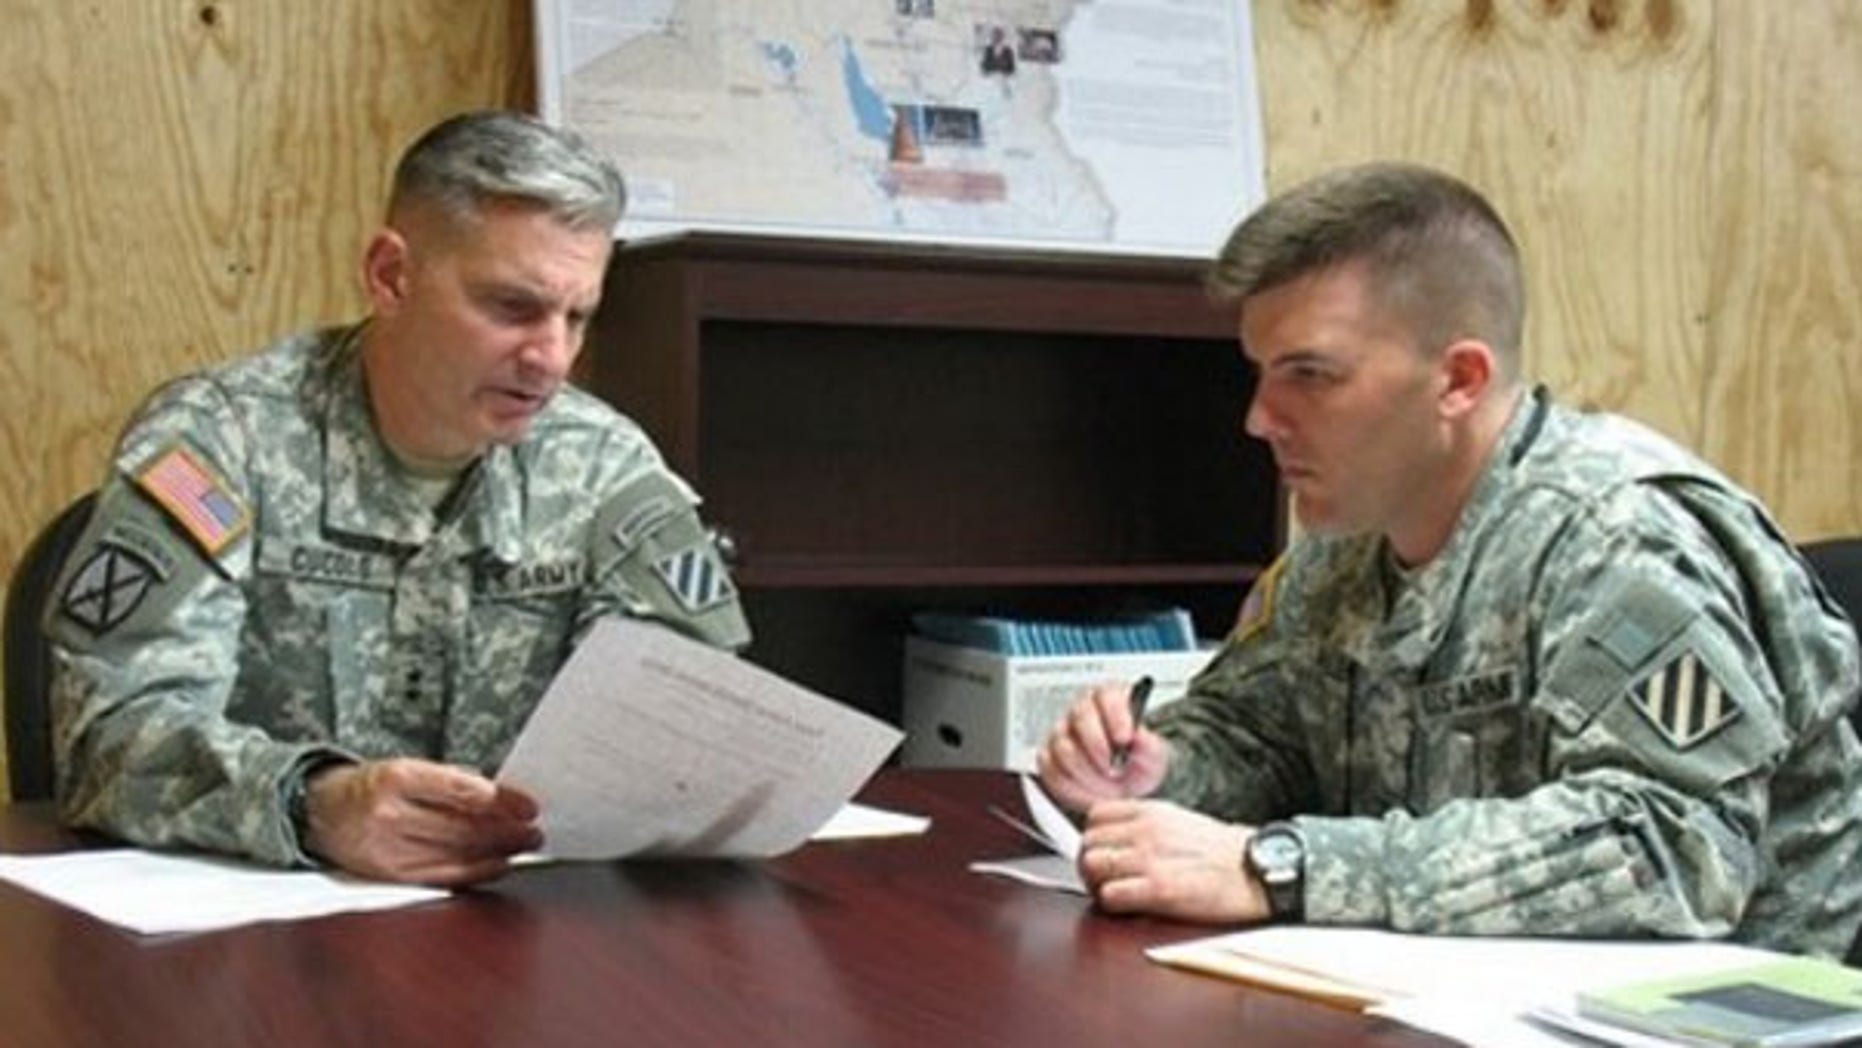 In this June 23 file photo, Maj. Gen. Anthony Cucolo, left, prepares for a mock television interview with his public affairs officer, Maj. Jeff Allen, at Fort Stewart, Ga. (AP Photo)